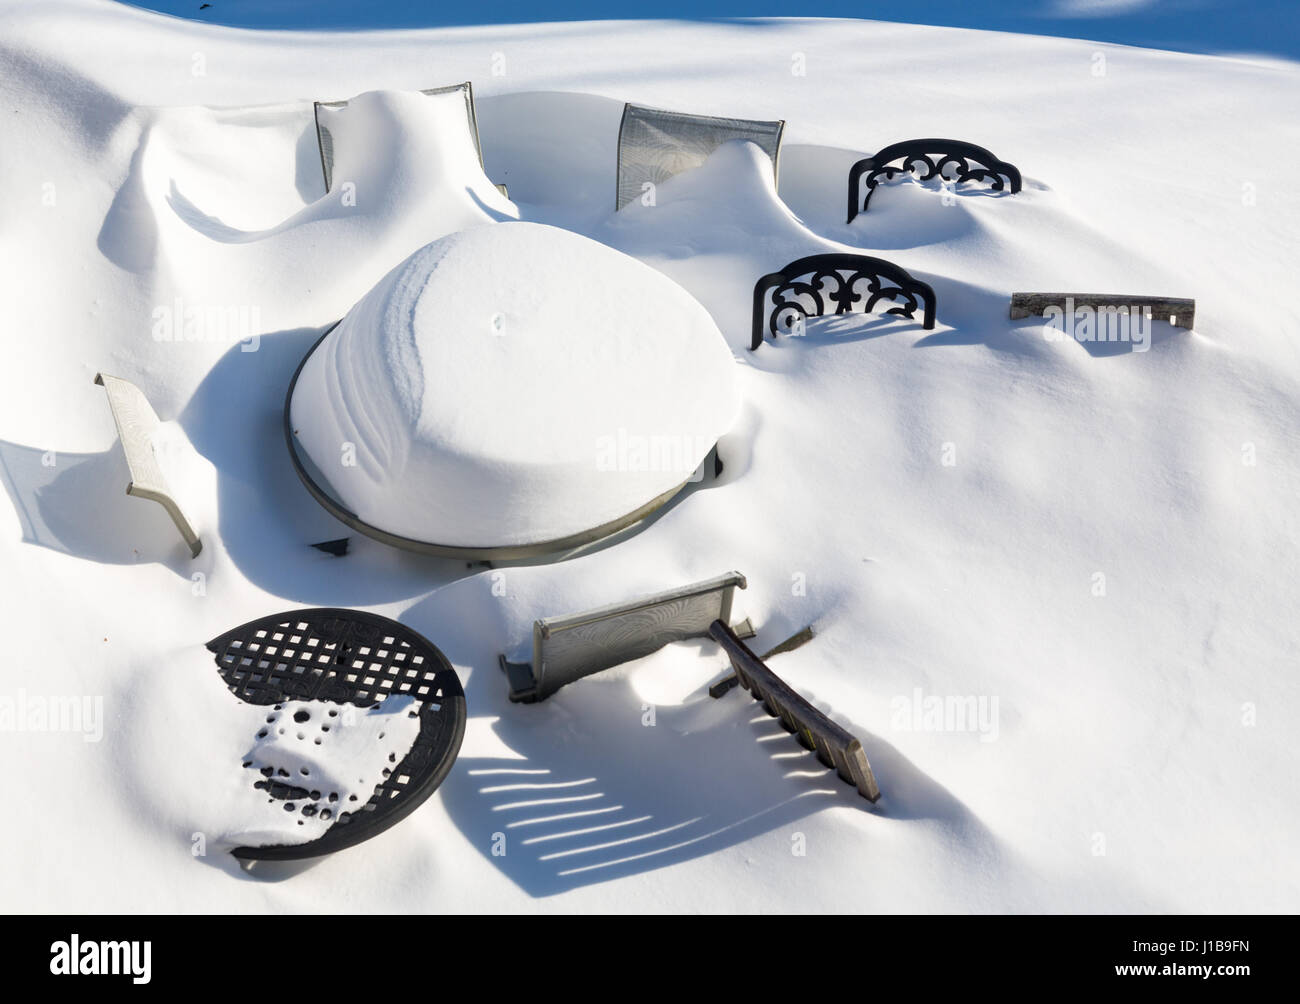 Outdoor garden furniture buried by snow in deep drift during a blizzard - Stock Image